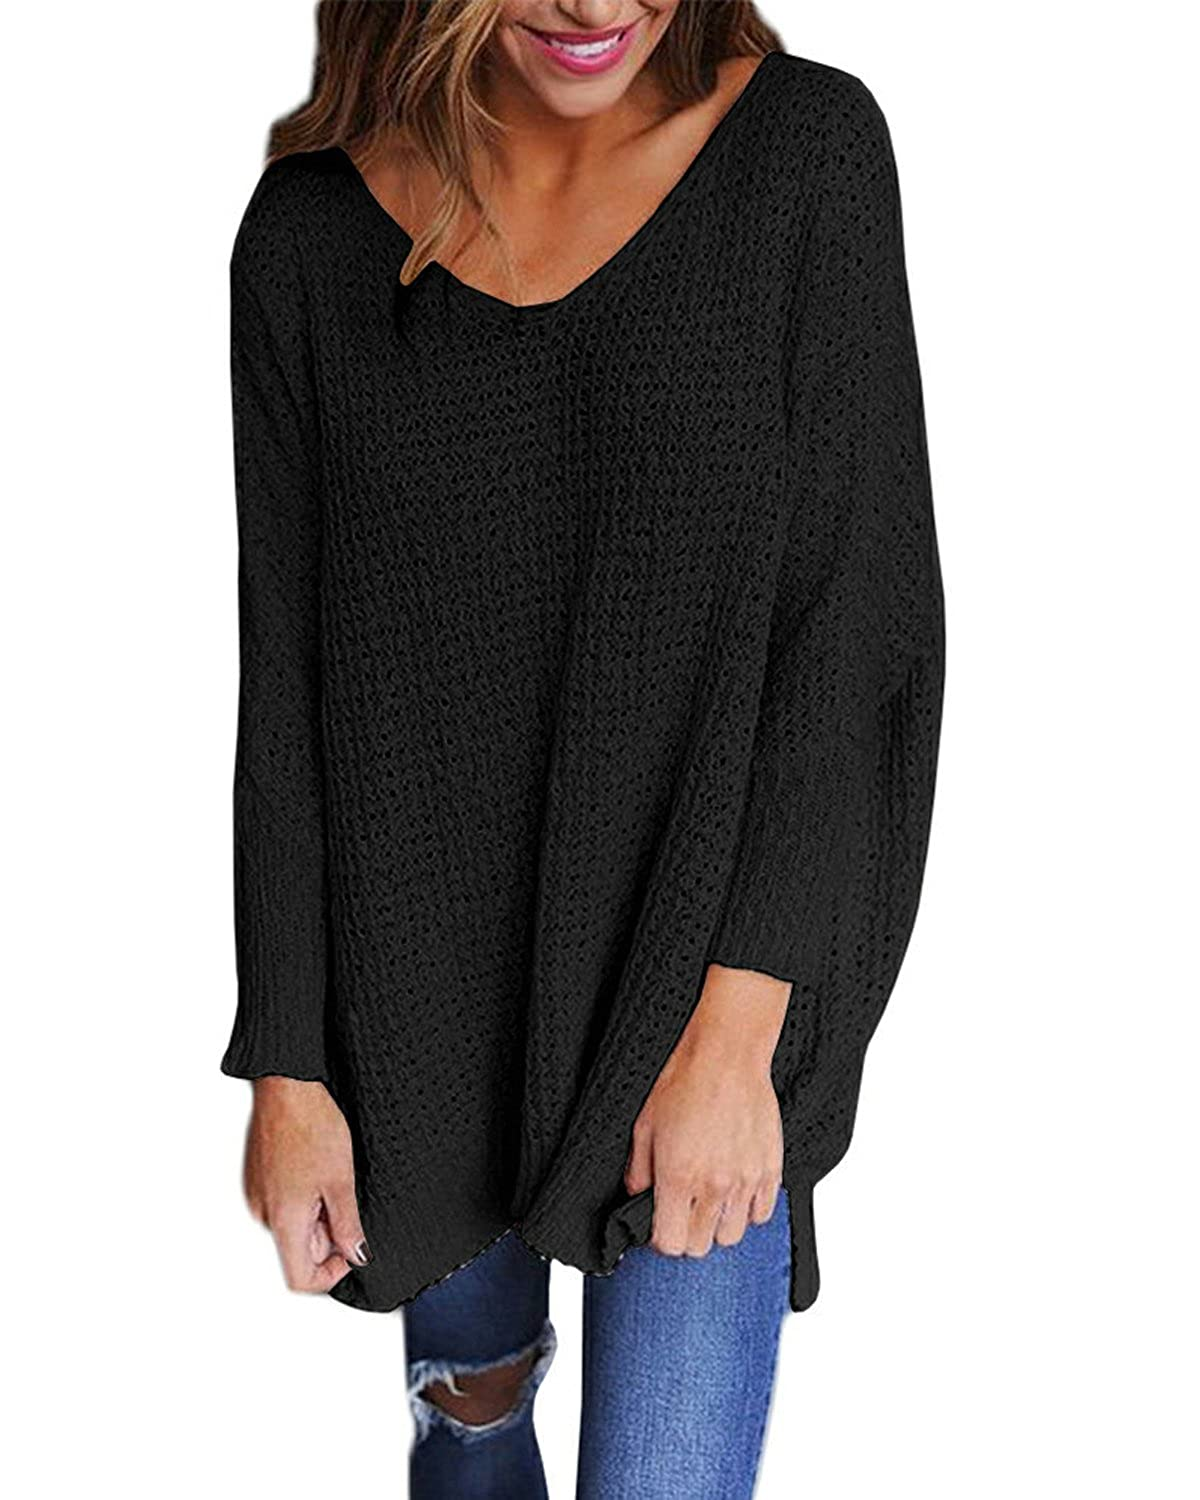 47830bb396db3 StyleDome Sweater Women Long Sleeve Blouse V-Neck Pullover Oversized Baggy  Crochet Knitted Jumper at Amazon Women s Clothing store